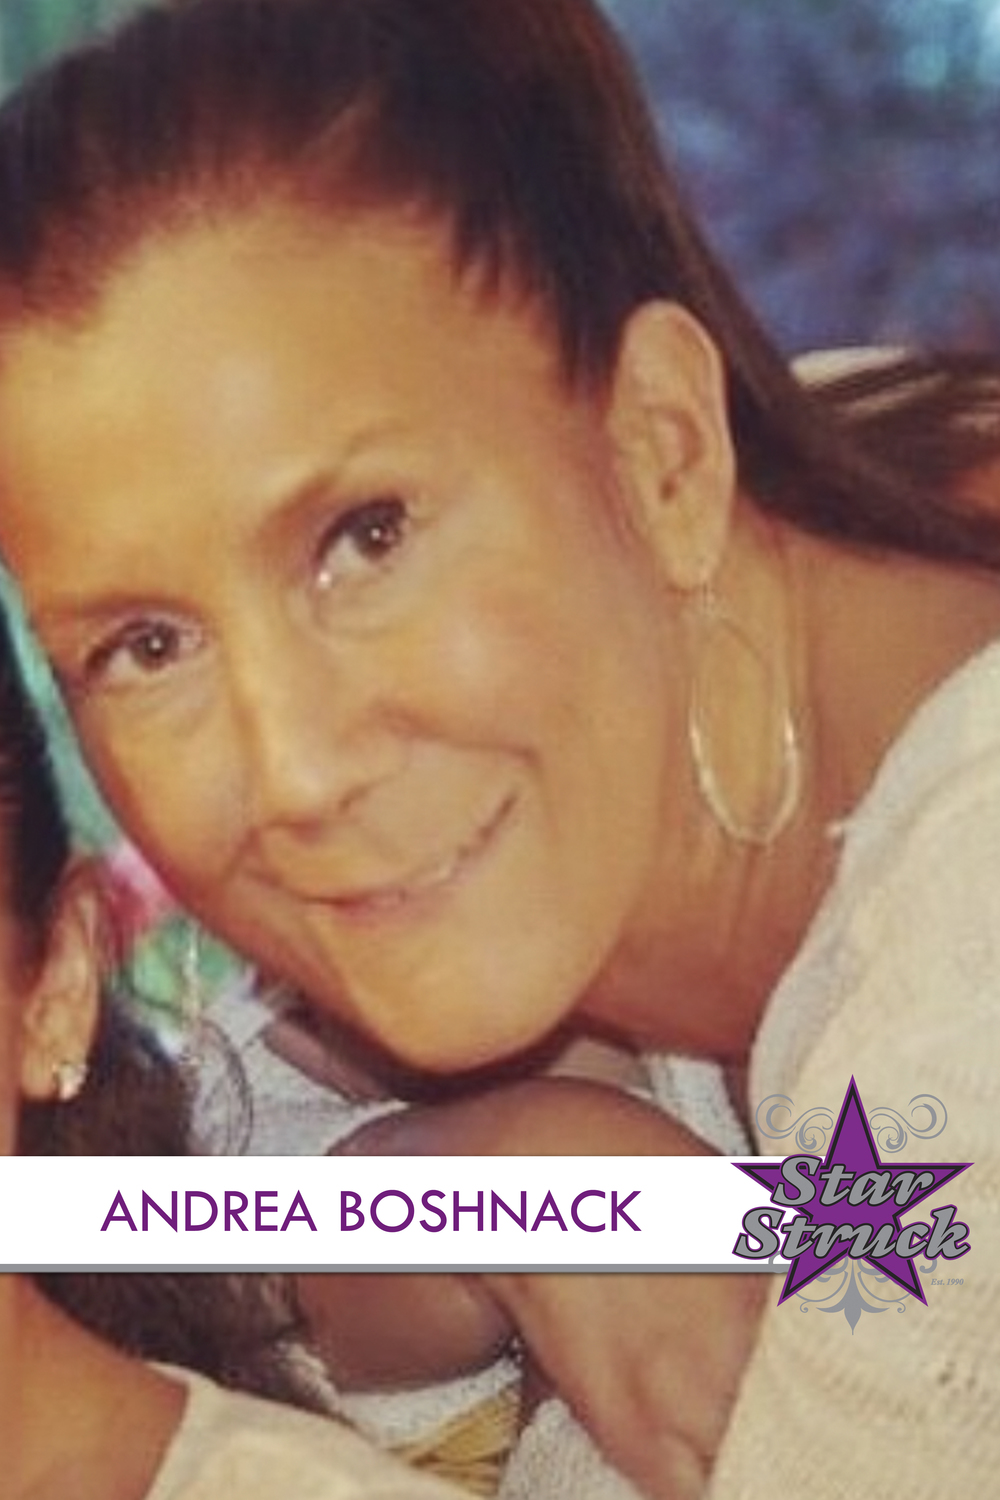 ANDREA BOSHNACK Andrea joined the Star Struck family in 1991 beginning her journey of recitals and dance competitions when her daughter Maria began dancing for our school. It was a place Andrea quickly learned to love. Her second daughter Gabriella also became a part of SSDS when she too started dancing in 1996. In September 2000, Andrea began working as a receptionist at Star Struck. You can always find her behind the desk at Star Struck, backstage at the recital, or even in a dressing room during competition- loving every minute of it. In addition to her two daughters, Andrea has a son Marco and celebrates  26 years with her husband Marc.